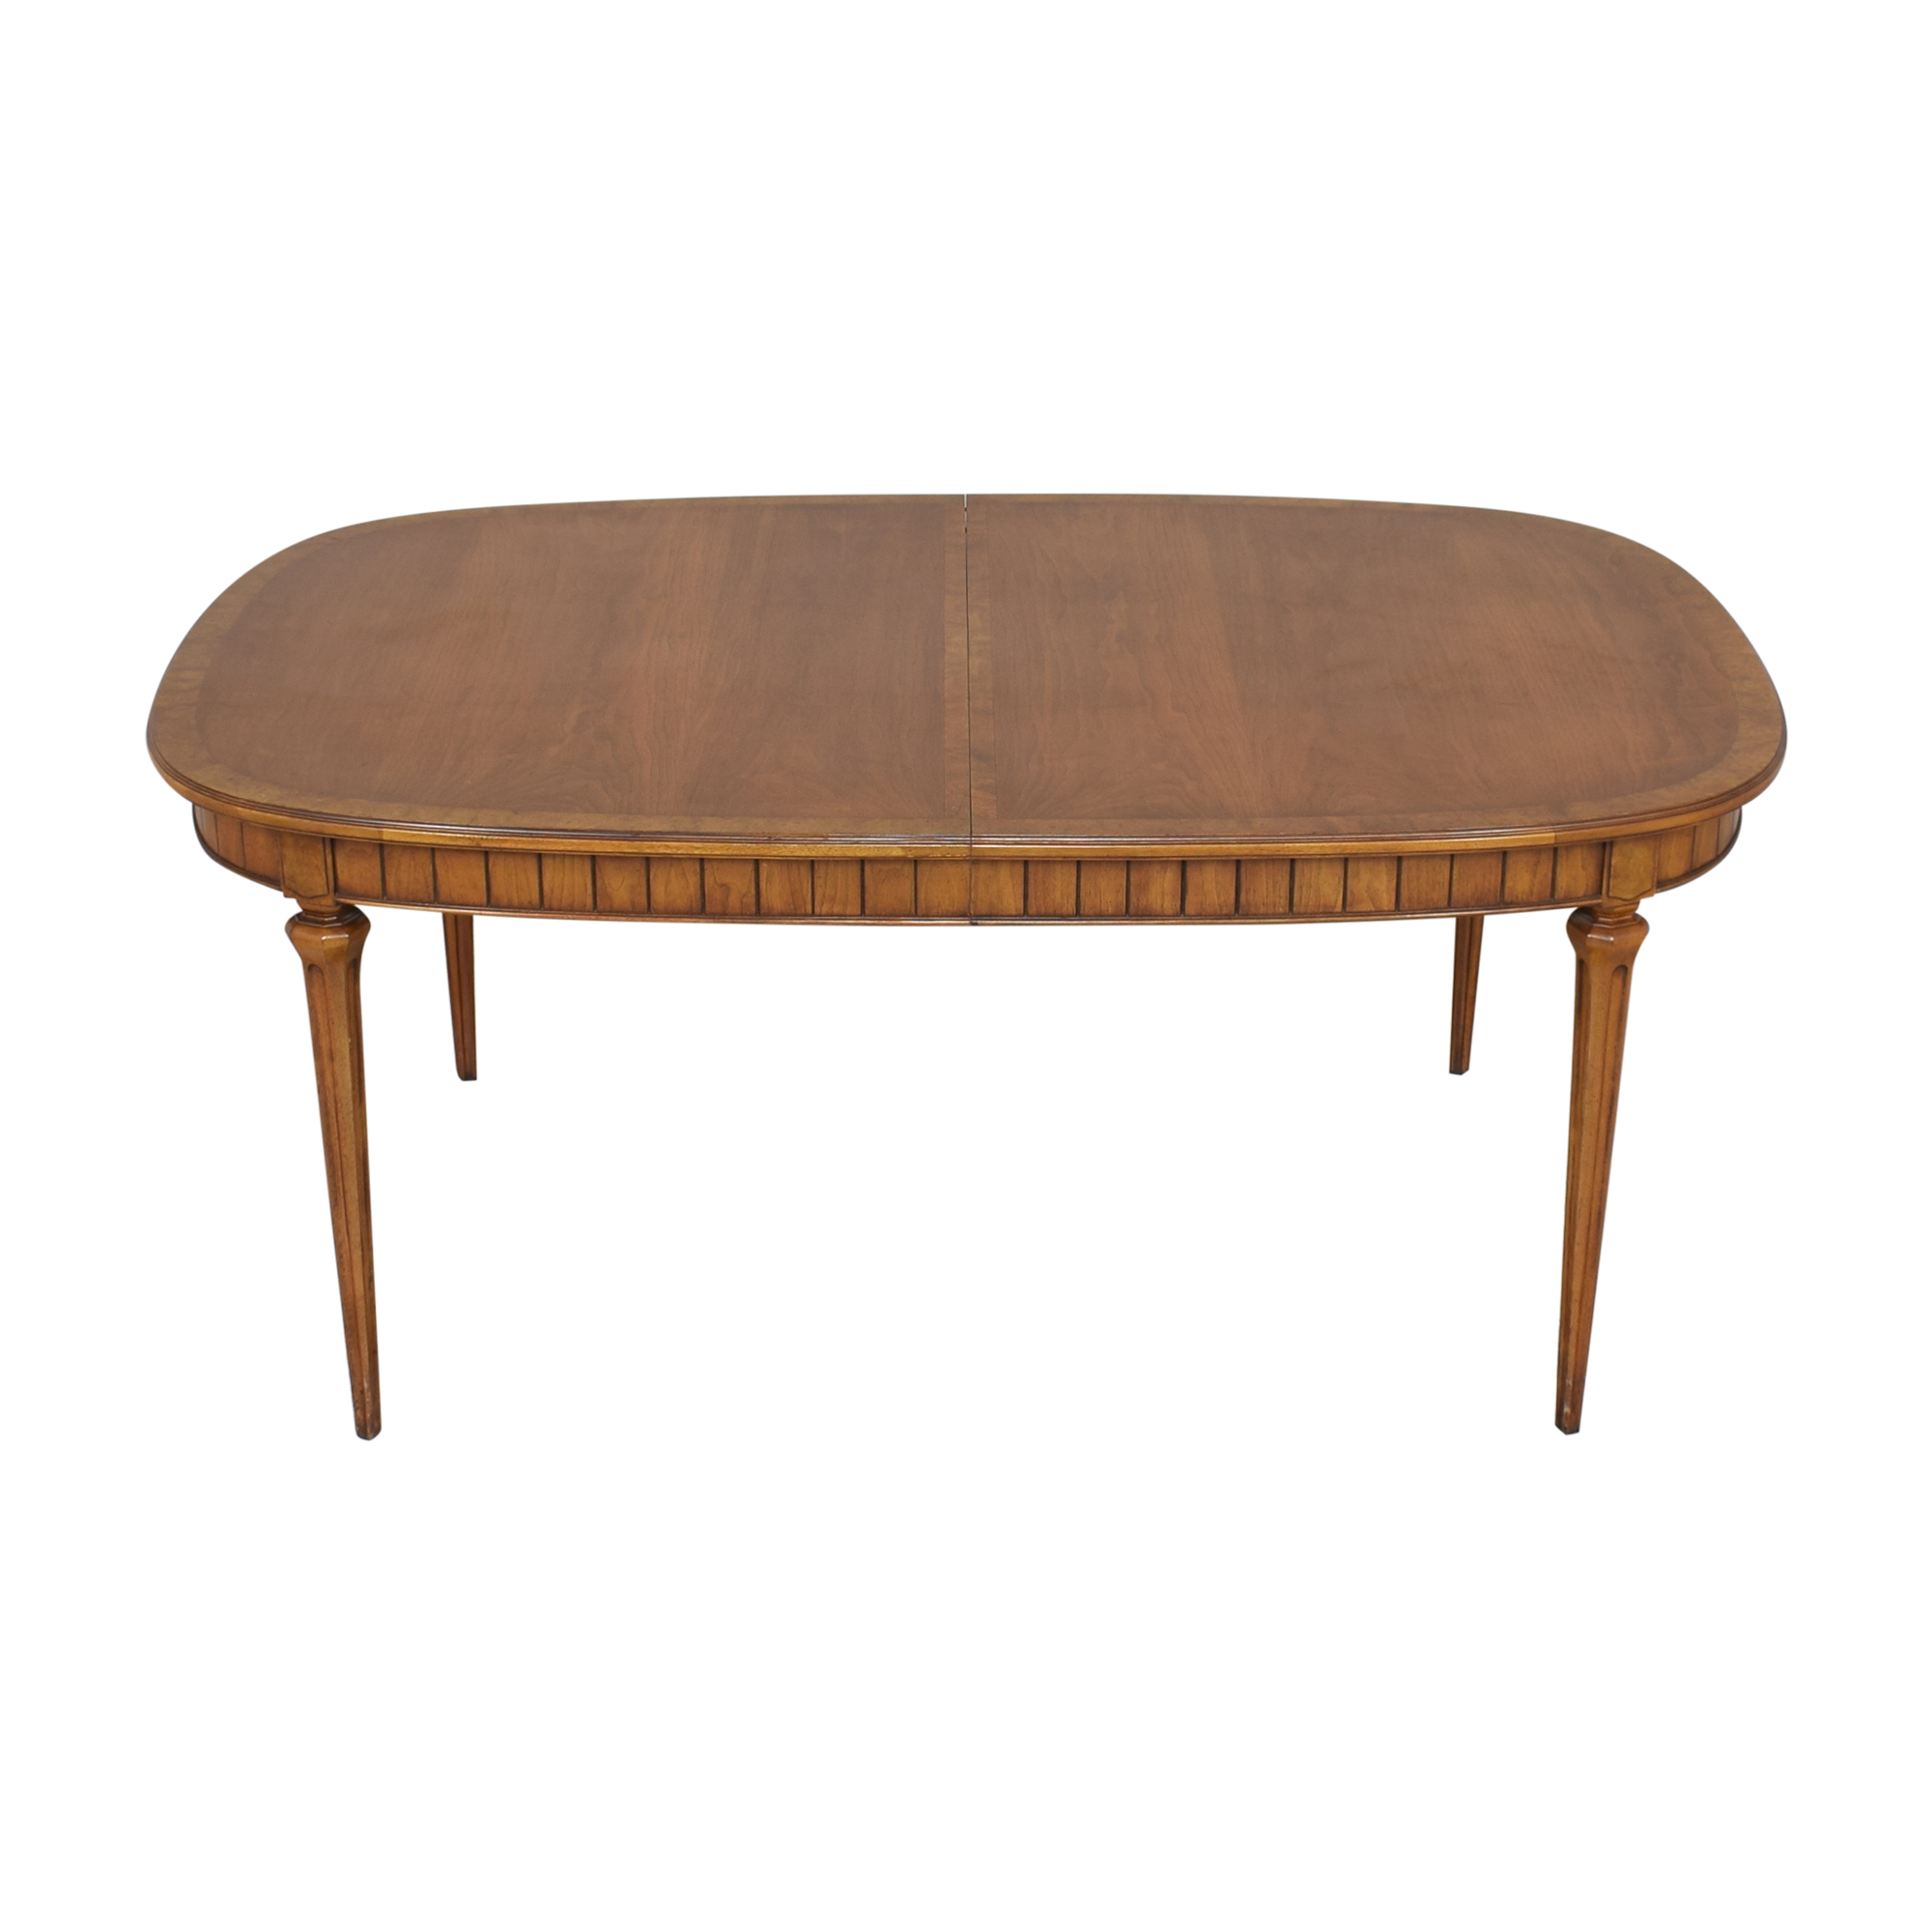 Vintage Extendable Dining Table for sale